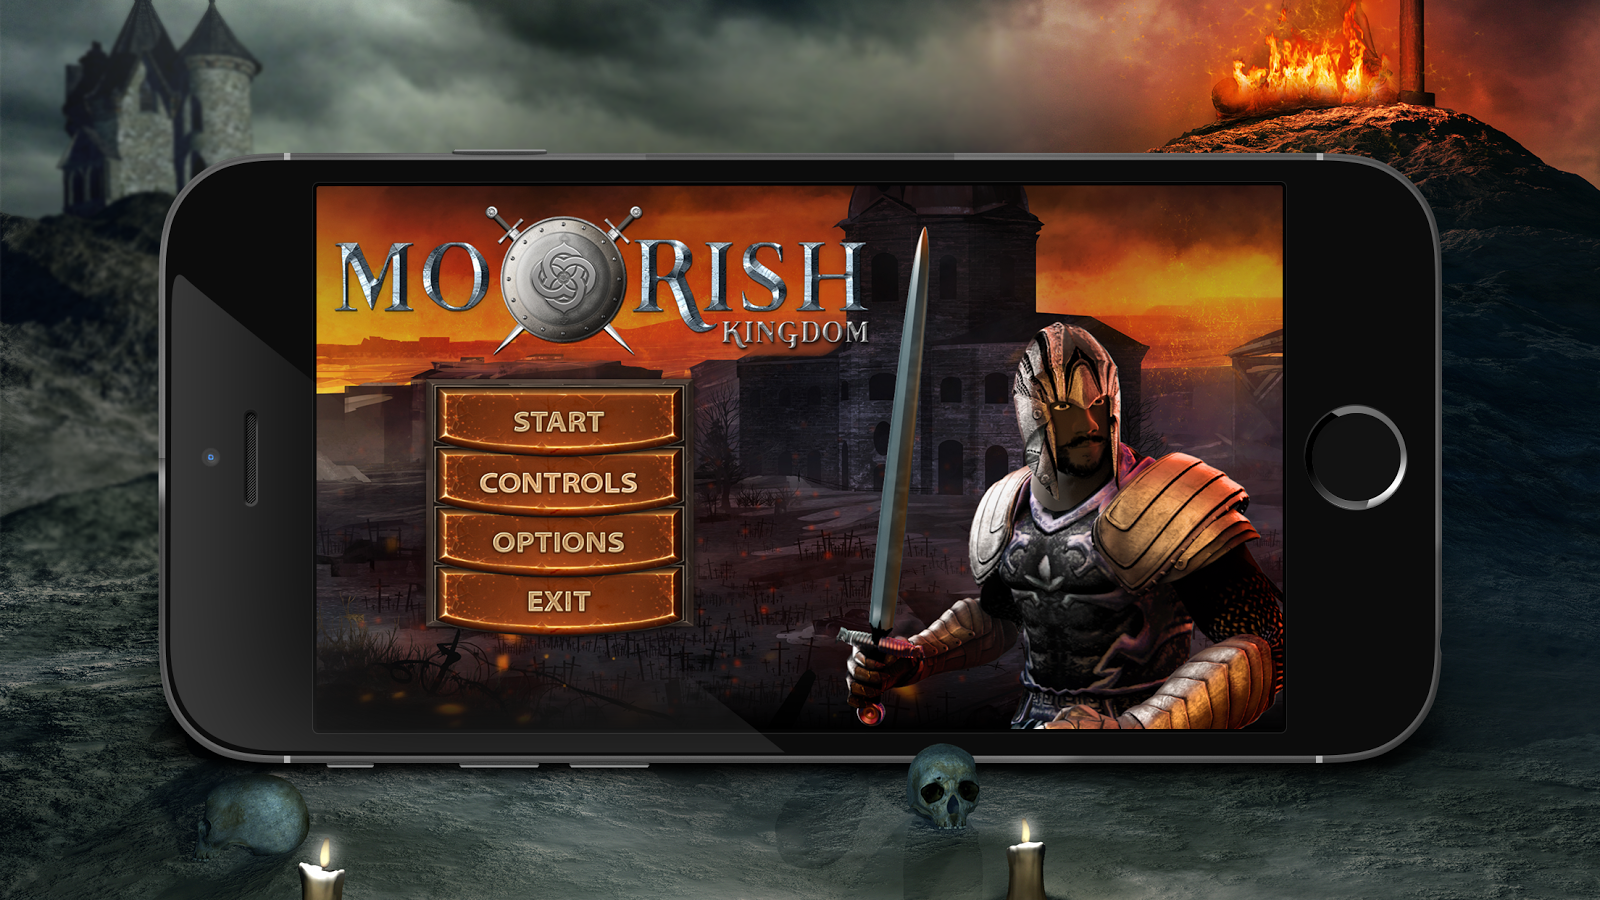 Moorish Kingdom Screenshot 7